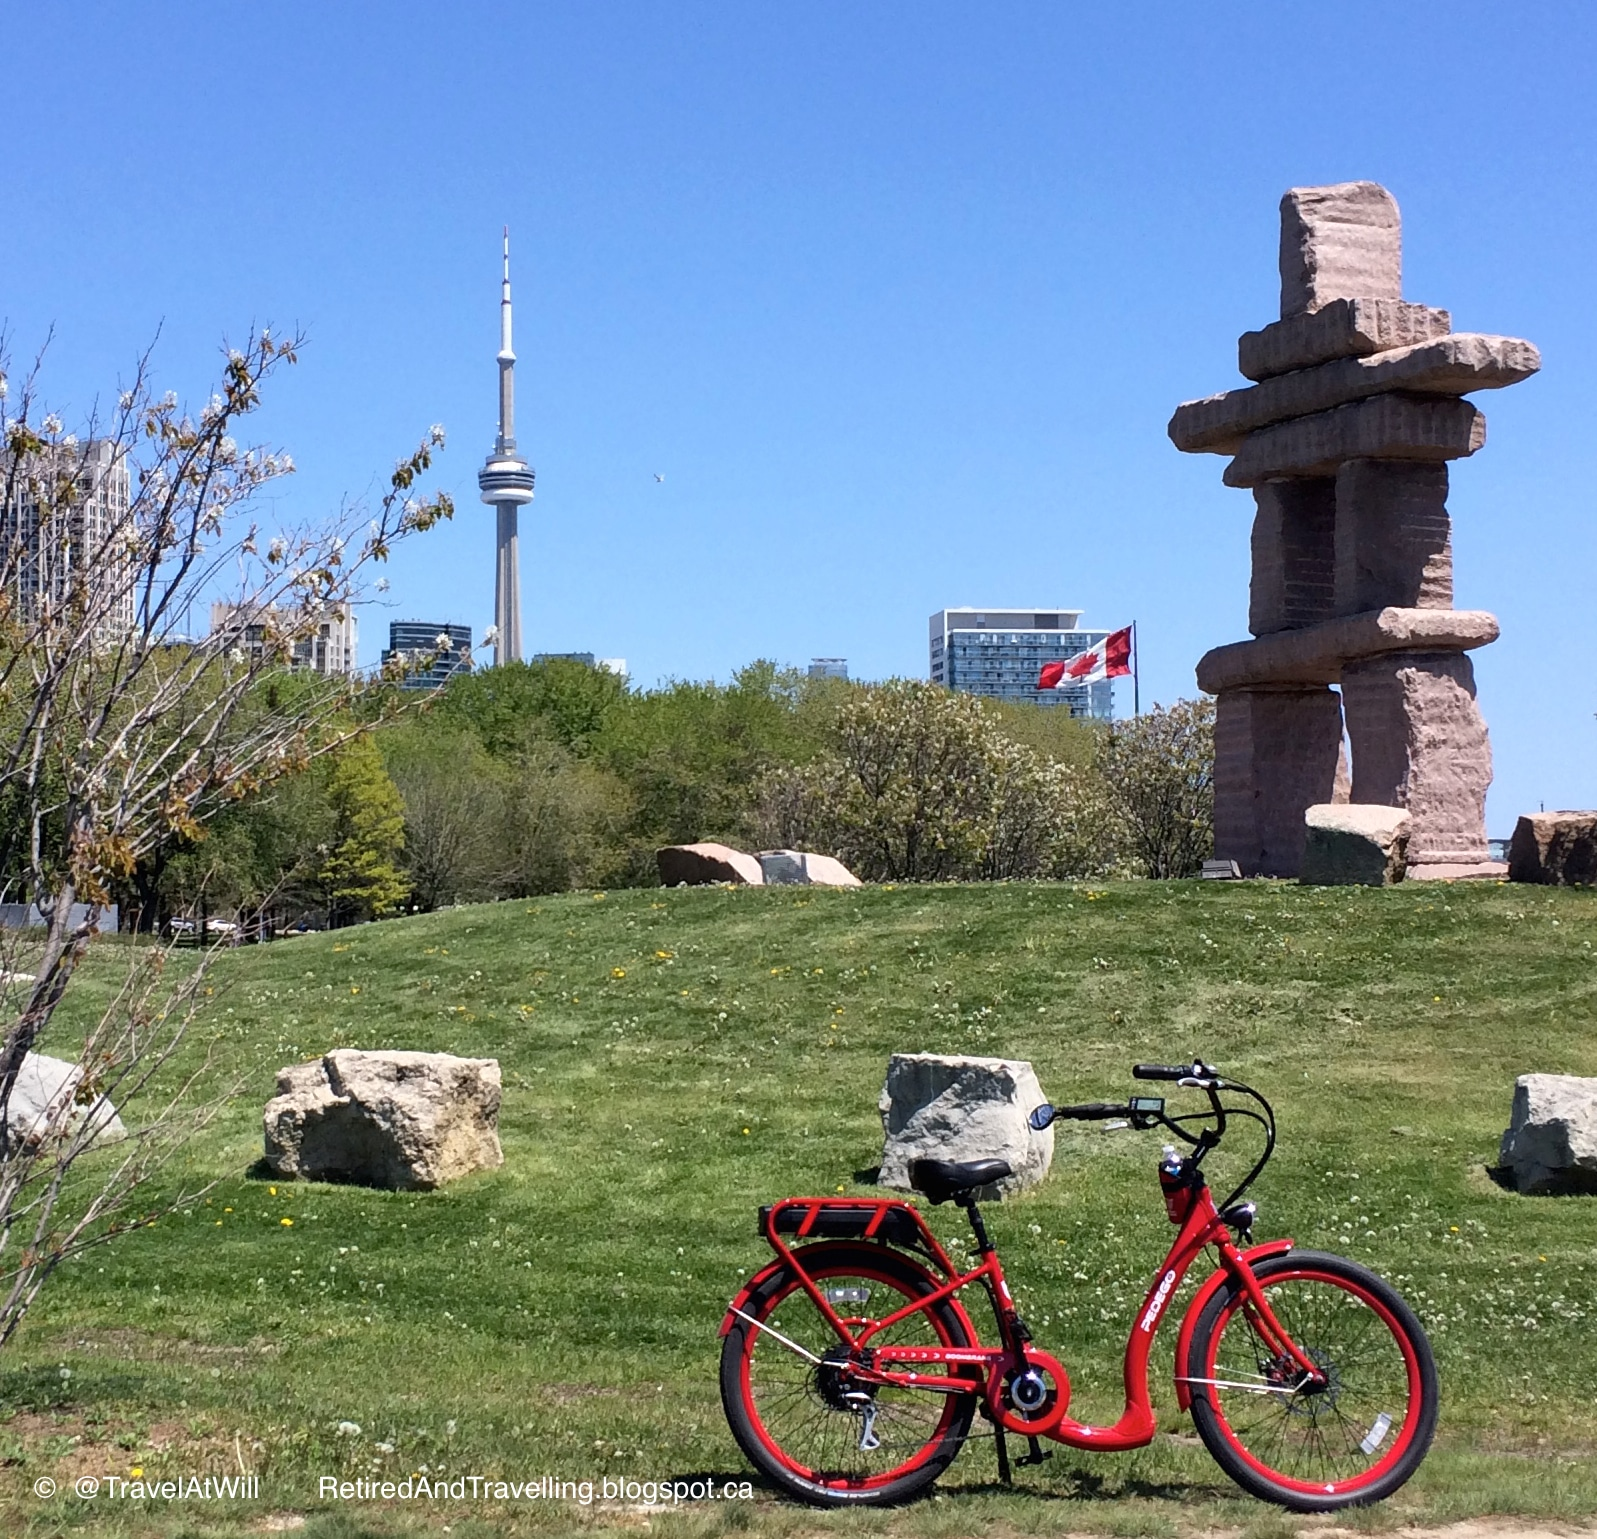 eBike Rides Around Toronto - Travel Plans for 2016.jpg